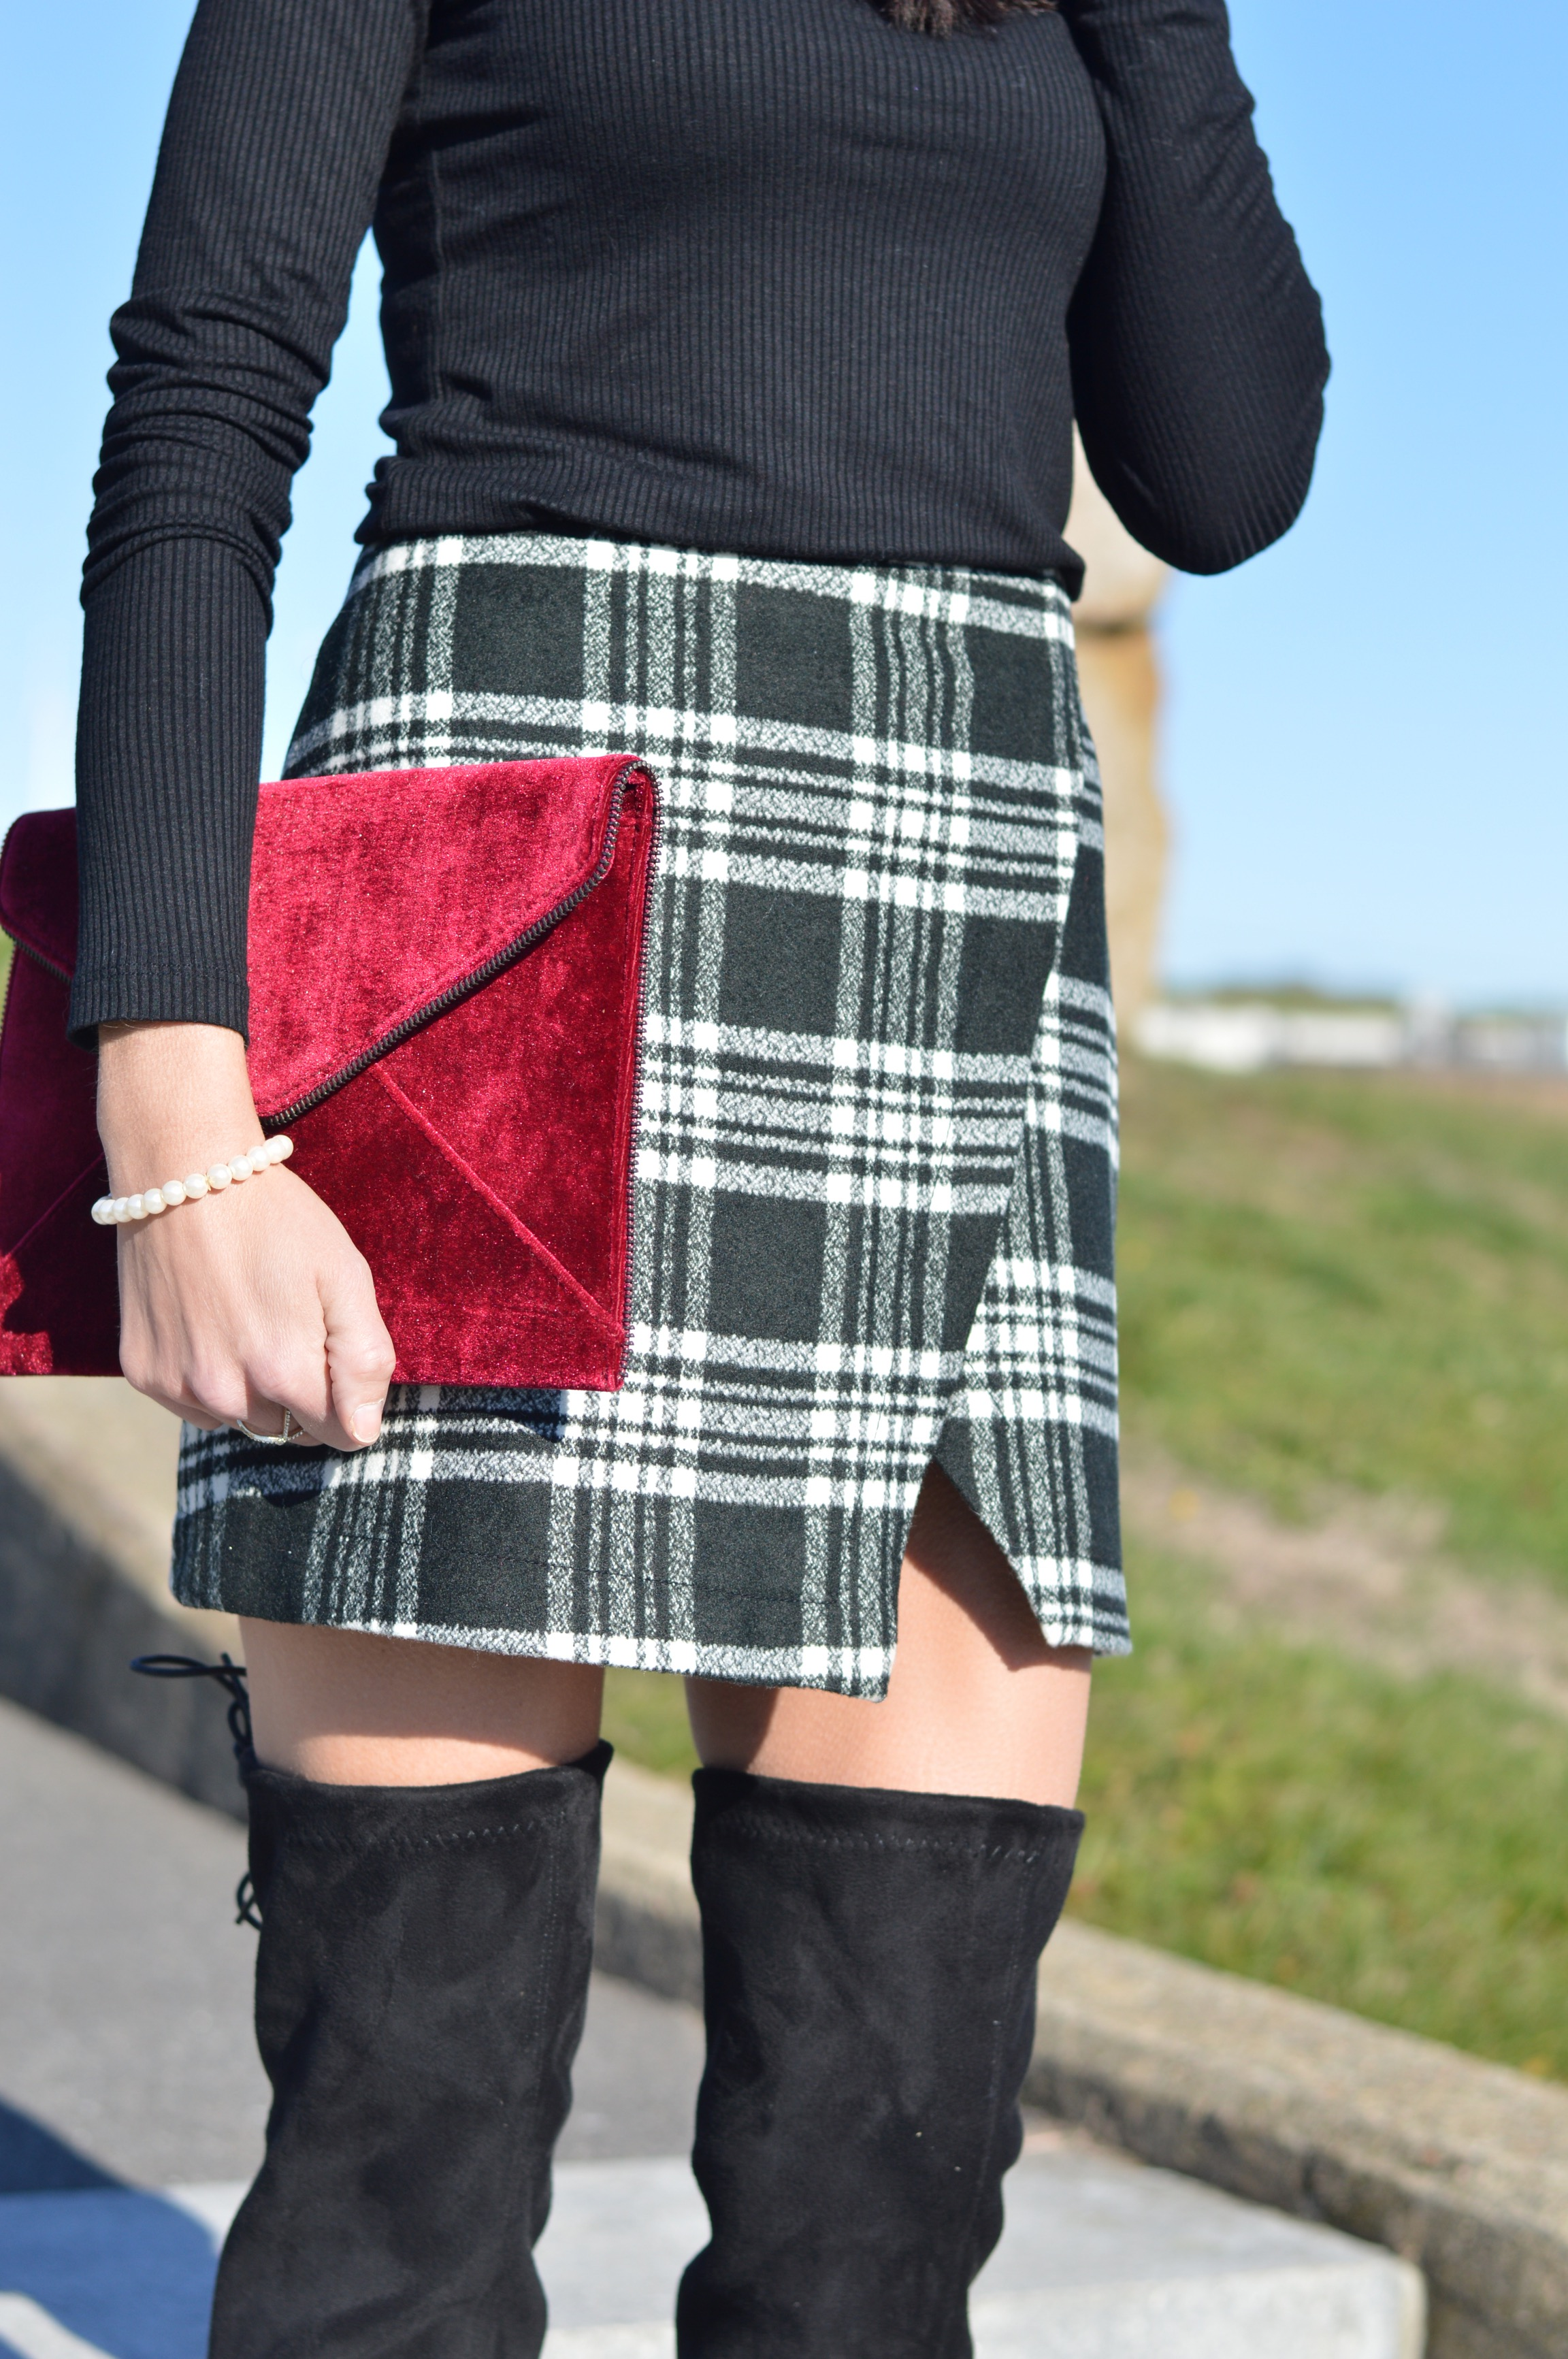 How to style plaid skirts for the cold weather